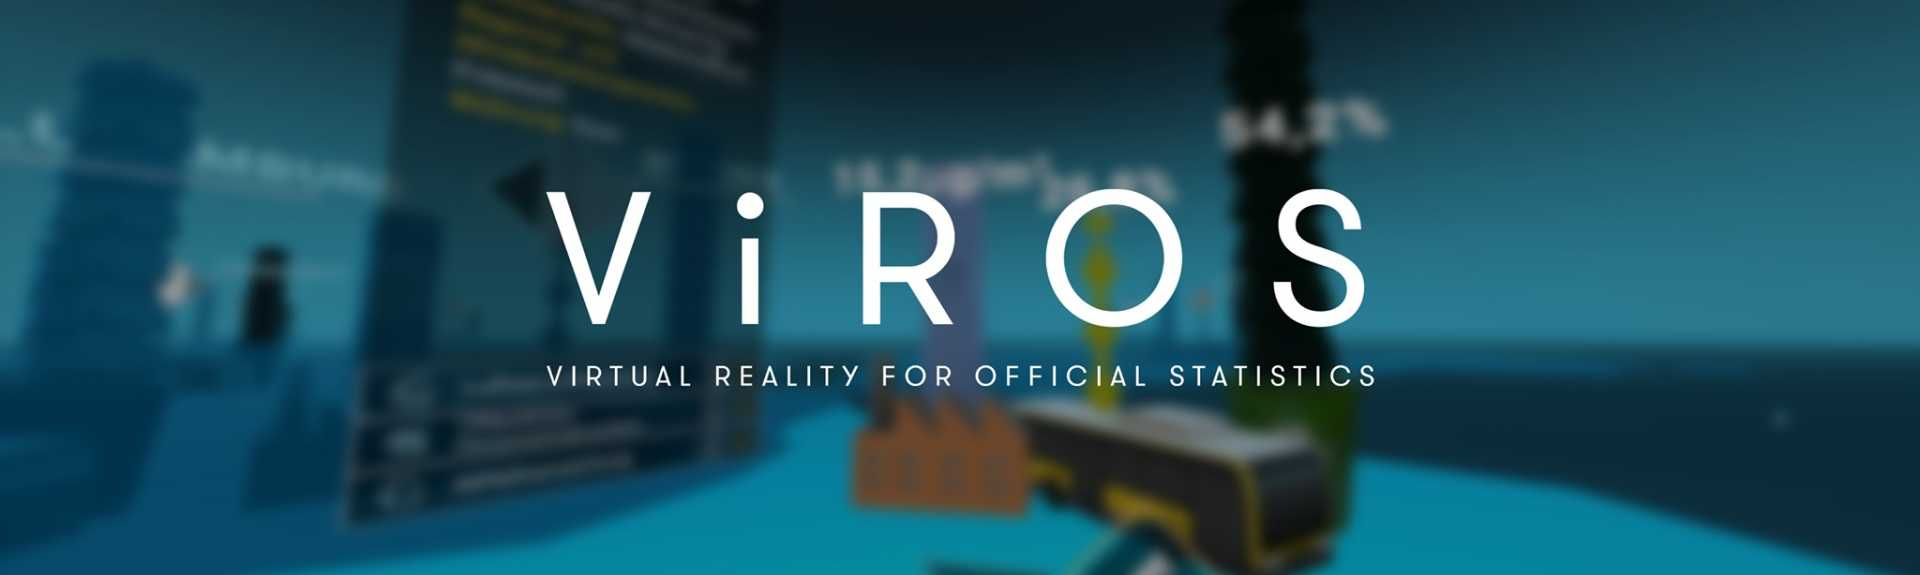 ViROS - Virtual Reality for Official Statistics